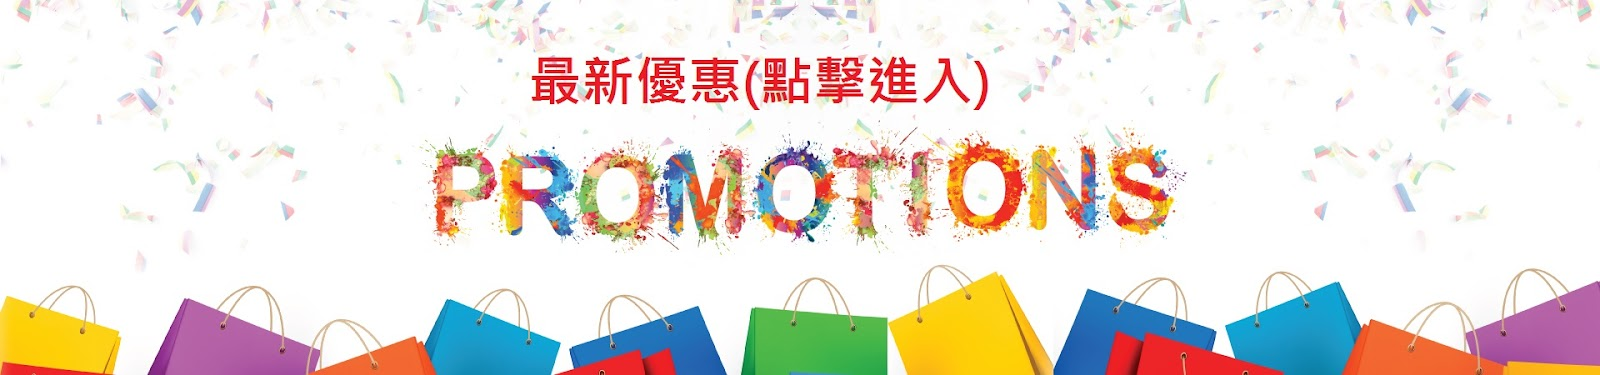 promotion-banner-confetti (1).jpg